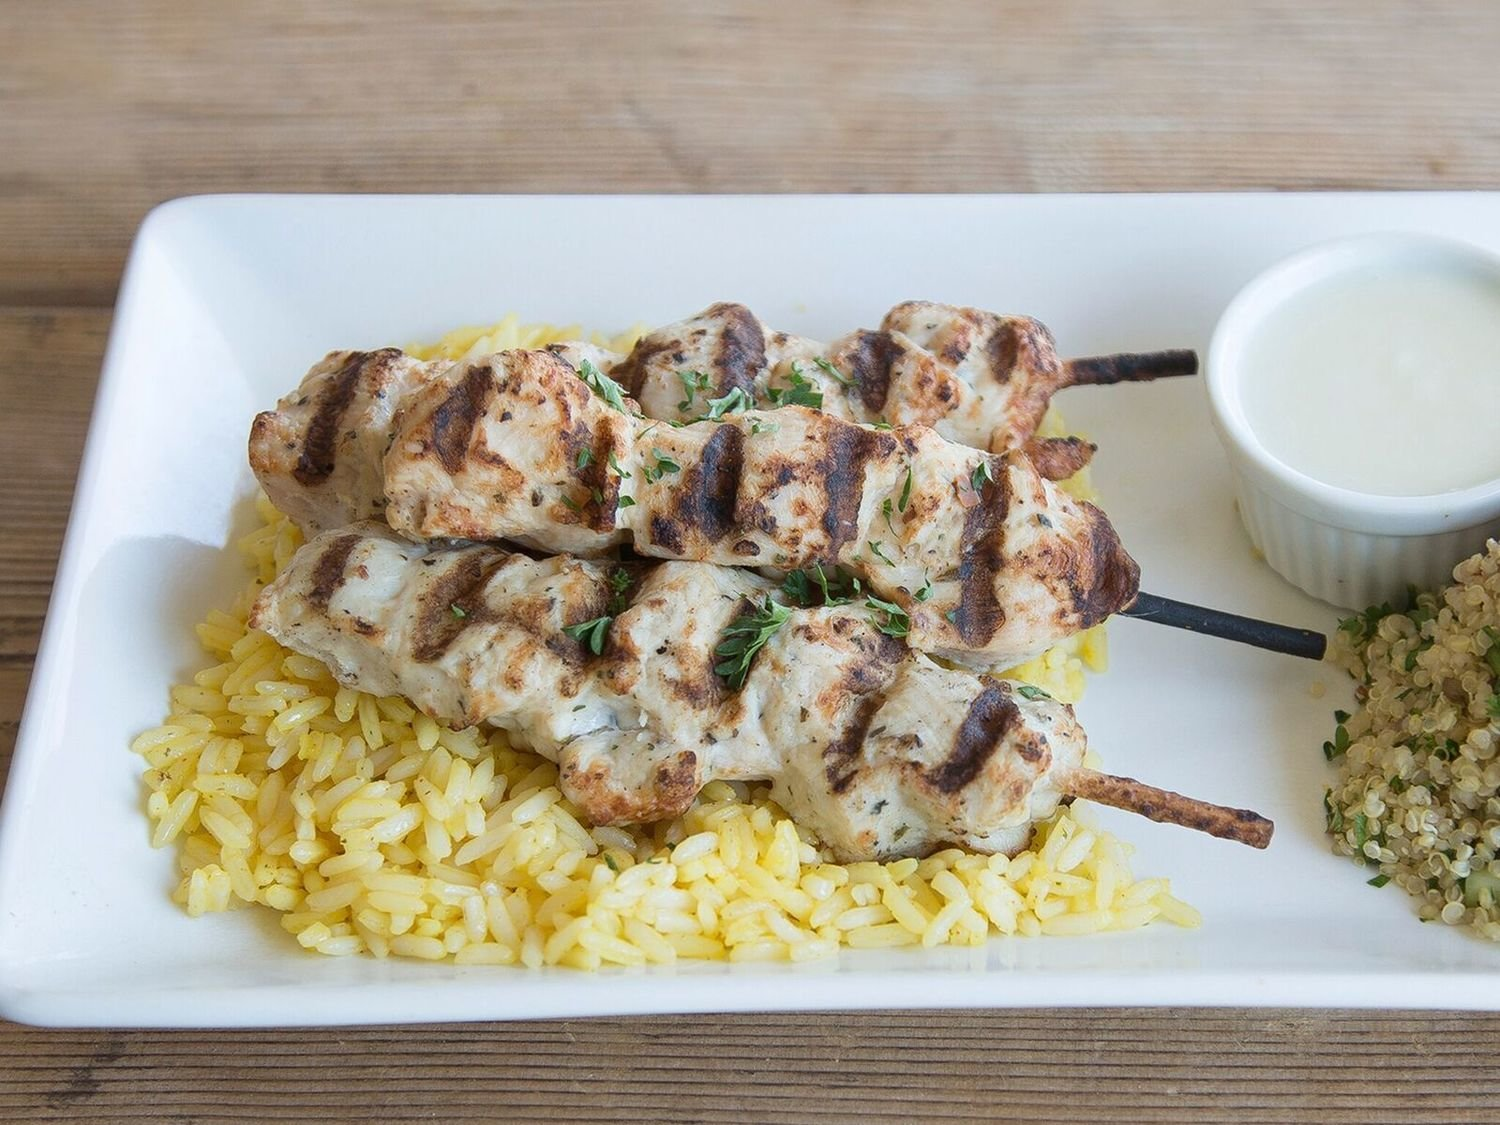 Armenian Chicken Skewers W/ Quinoa tabbouleh + Garlic Sauce